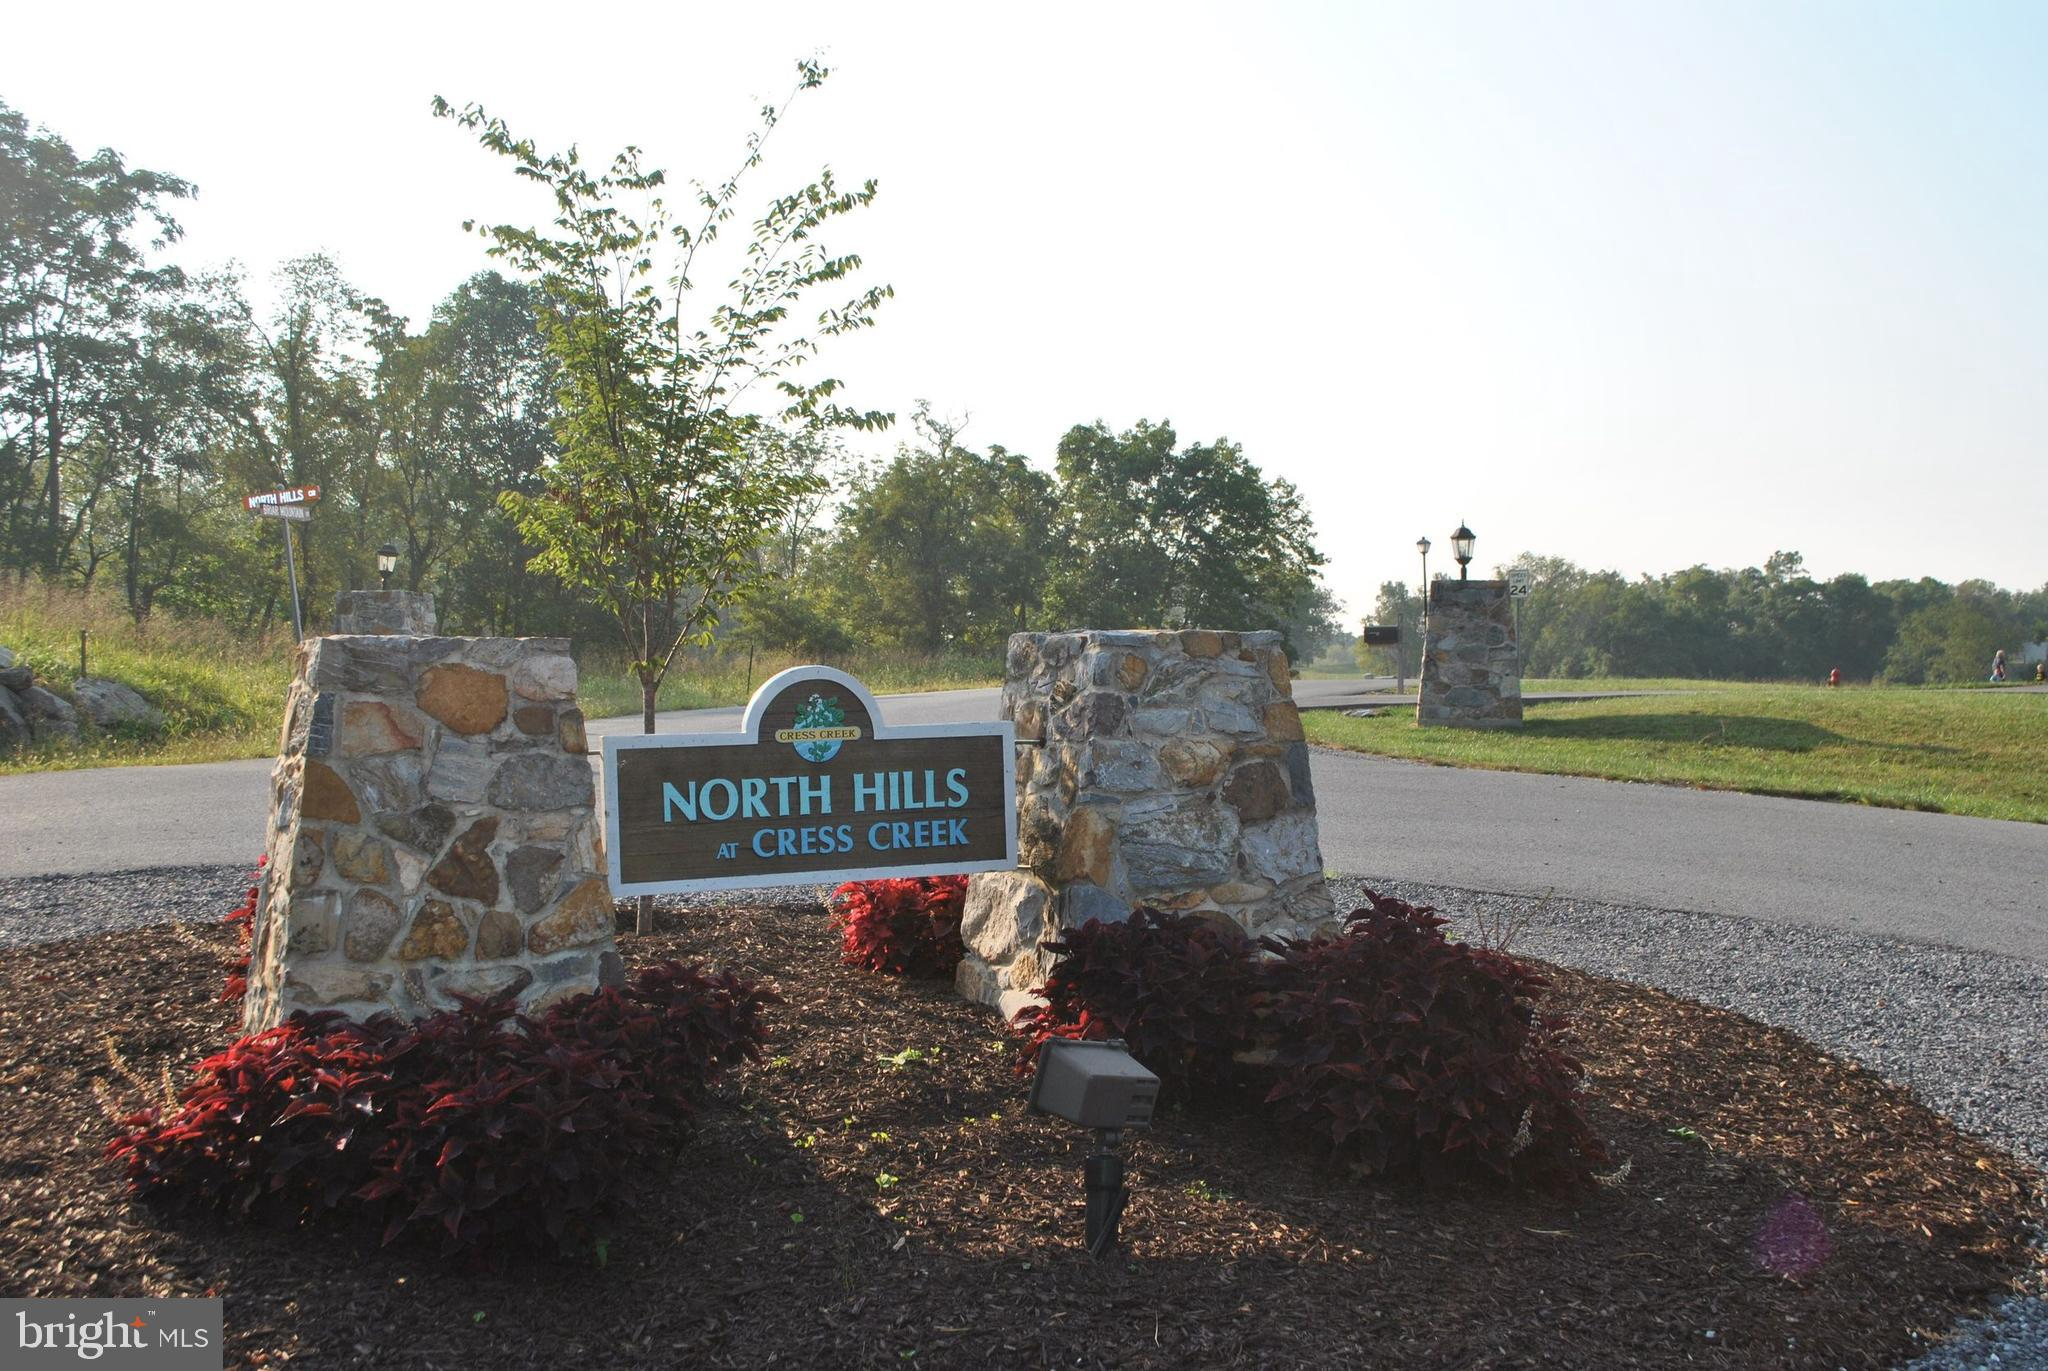 Jefferson Co. premier North Hills at Cress Creek subdivision community offering 10 desirable lots. Lot #3,4,8,9,13,14,15,16,18,20 All lots are between .75 and 1.1 +- acres and priced at $125000 each. With each full price lot closing seller is offering a one year social membership at Cress Creek CC a $1704 current value. Membership in the country club is not a requirement  Please visit North Hills at Cress Creek's web site for building guidelines. Tax docs for each individual lot in documents. Taxes and lot size in listing are for lot 20. Listing agent has original subdivision court house recorded plats in office. Agents and their clients are welcome to stop buy to and make copies around the corner at Specialty Binding. All information is deemed accurate but buyers due diligence is required.  As of 11/29/2020 Lots 4 & 15 are under contract. Cash offers close 12/21/2020 As of 11/30/2020 Lot 3 is under contract.  Closing 31 Jan 2021.  As of 12/16/2020 lot 18 is under contract. Closing 31 Jan. 2021 As of 13 Jan 2021 lot 14 is under contract. Closing 29 Jan 2021 Lots 4 & 15 closed 21 Dec2020 See under closed lots in Bright MLS.